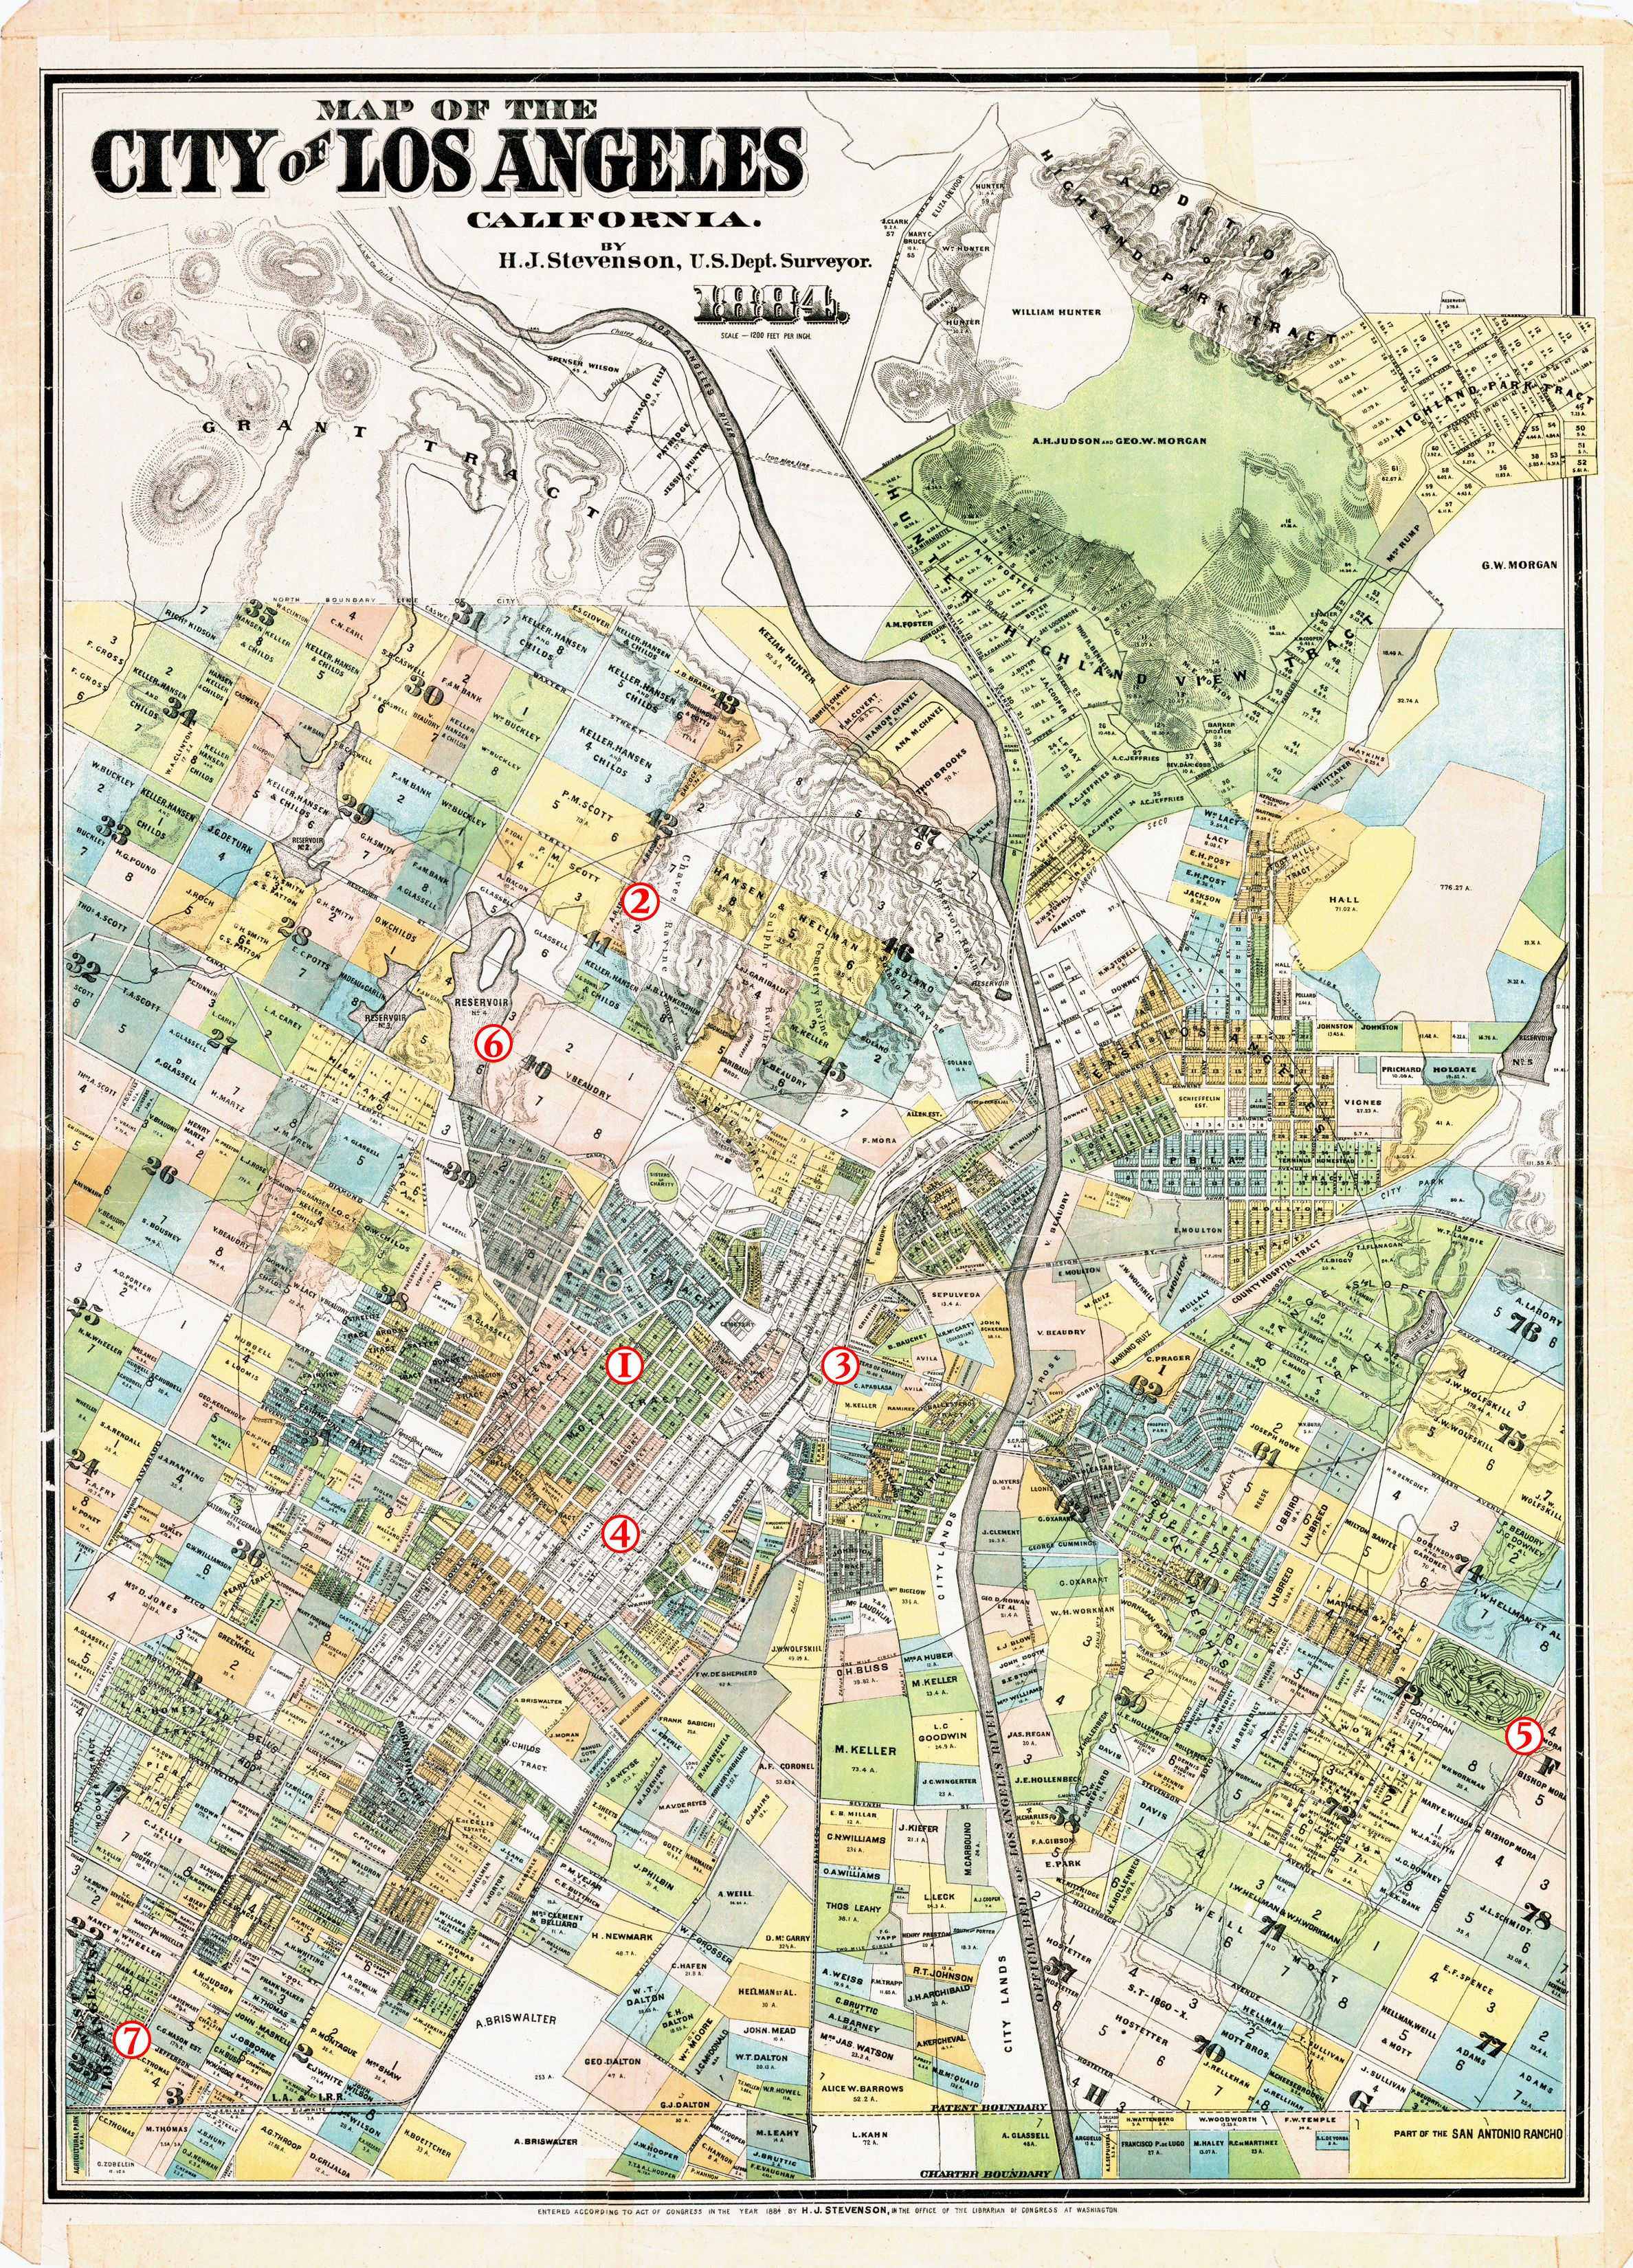 Cadastral Map Of Los Angeles 1884 | Maps Of Los Angeles | Pinterest - Van Nuys California Map